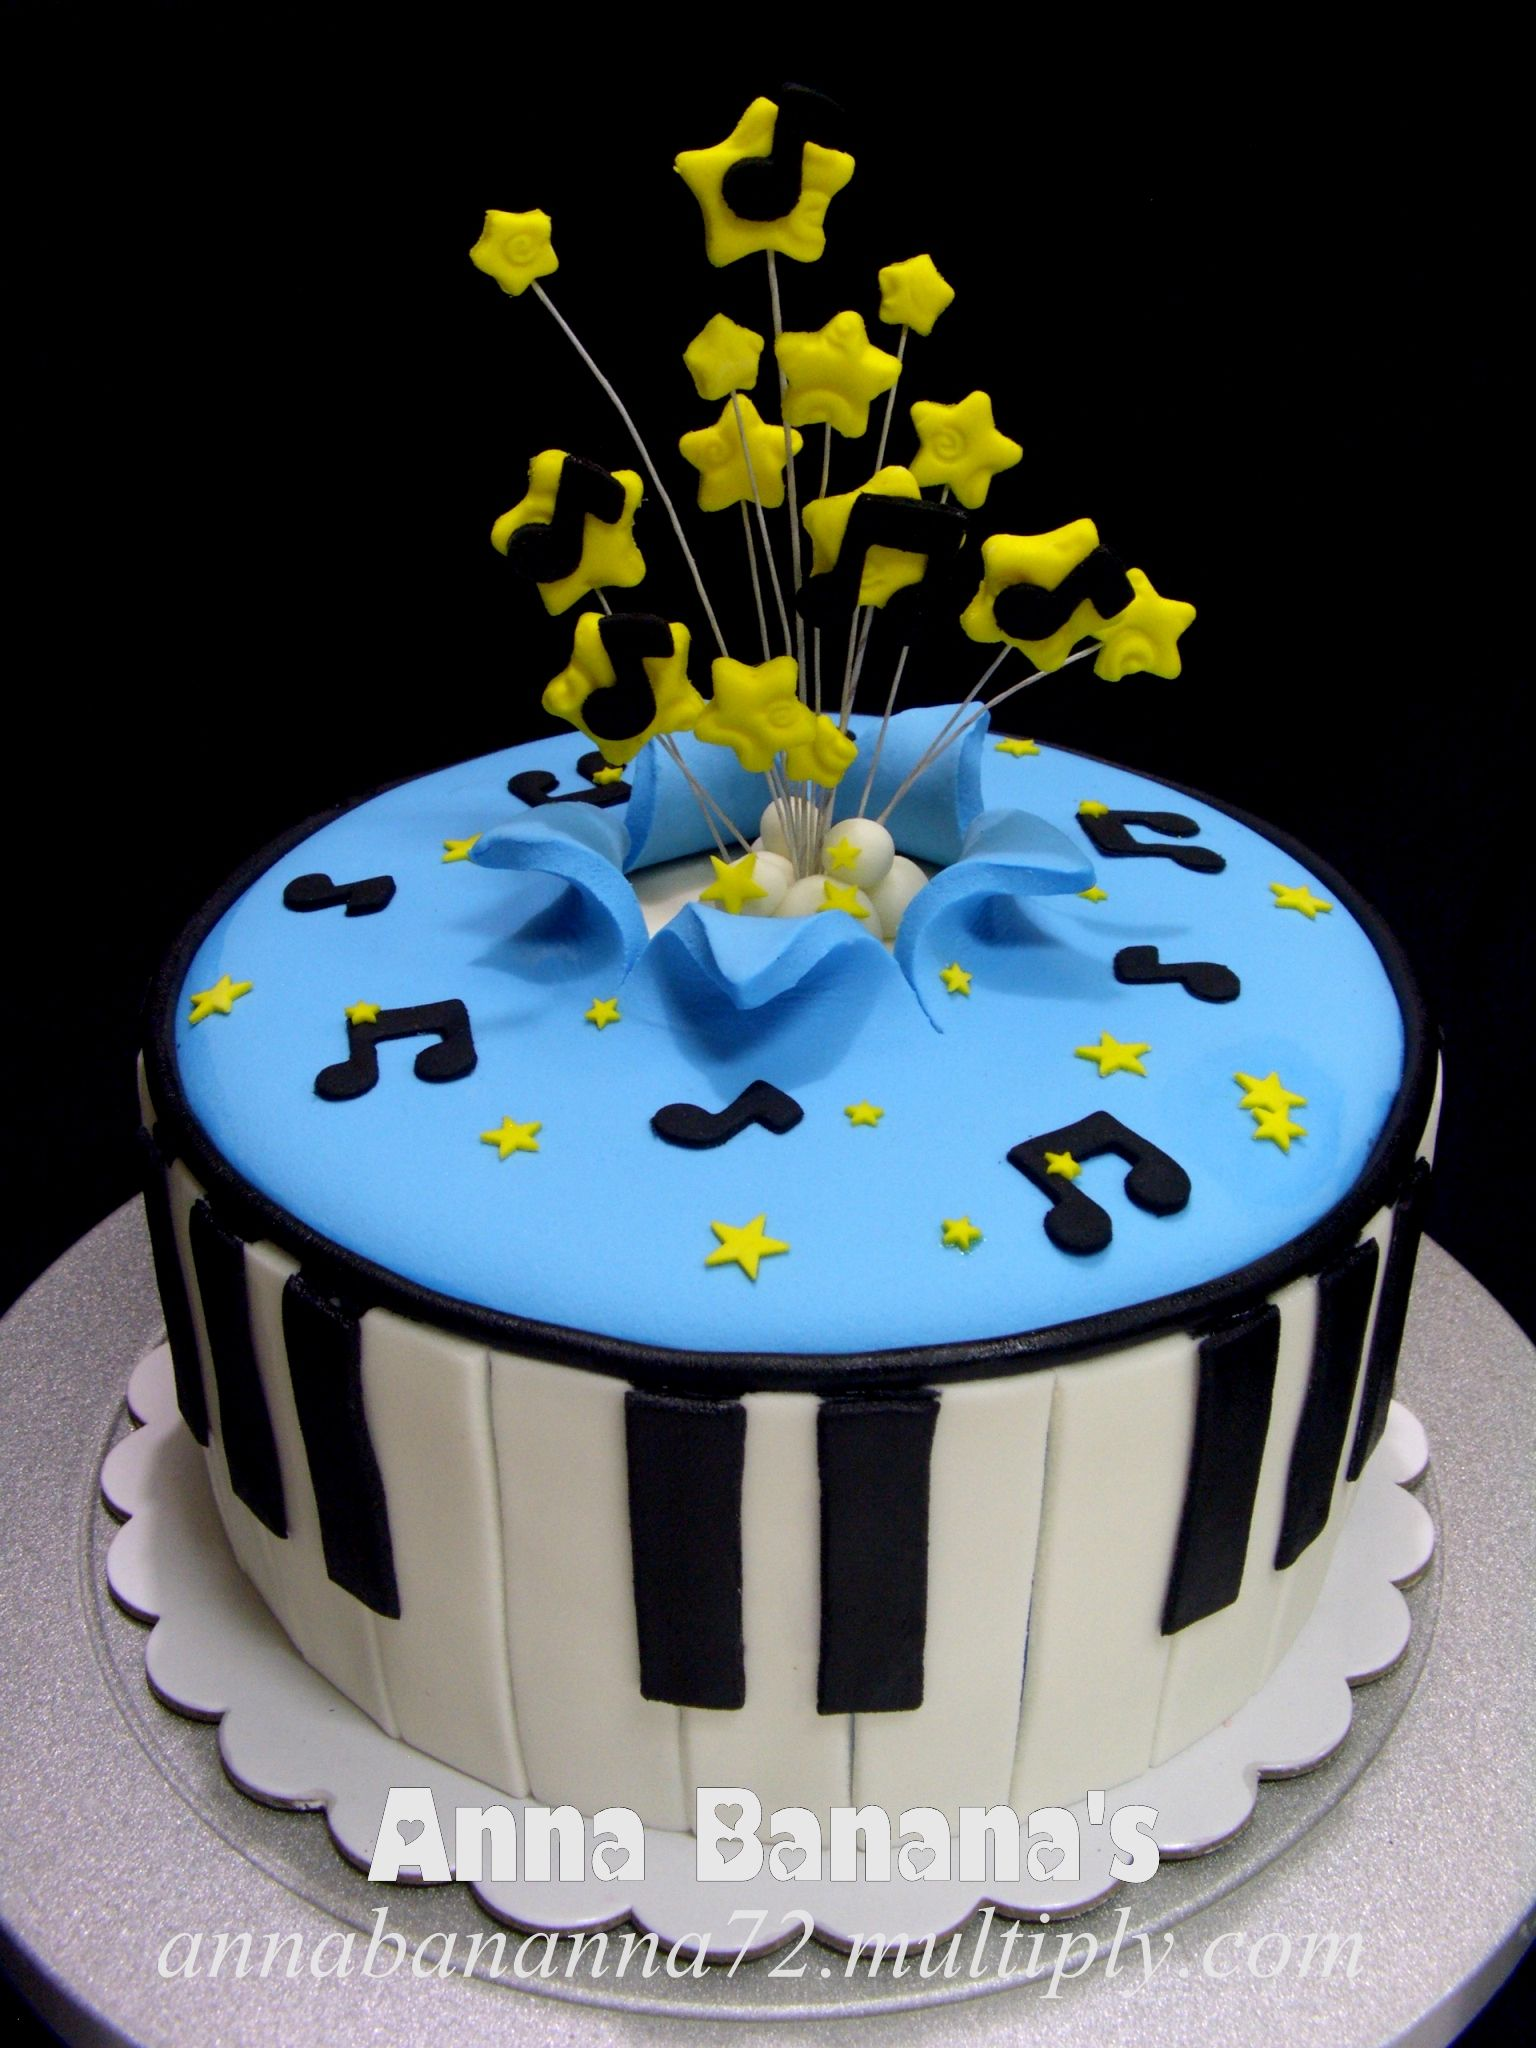 Need Pictures Of Birthday Cakes With A Musical Theme